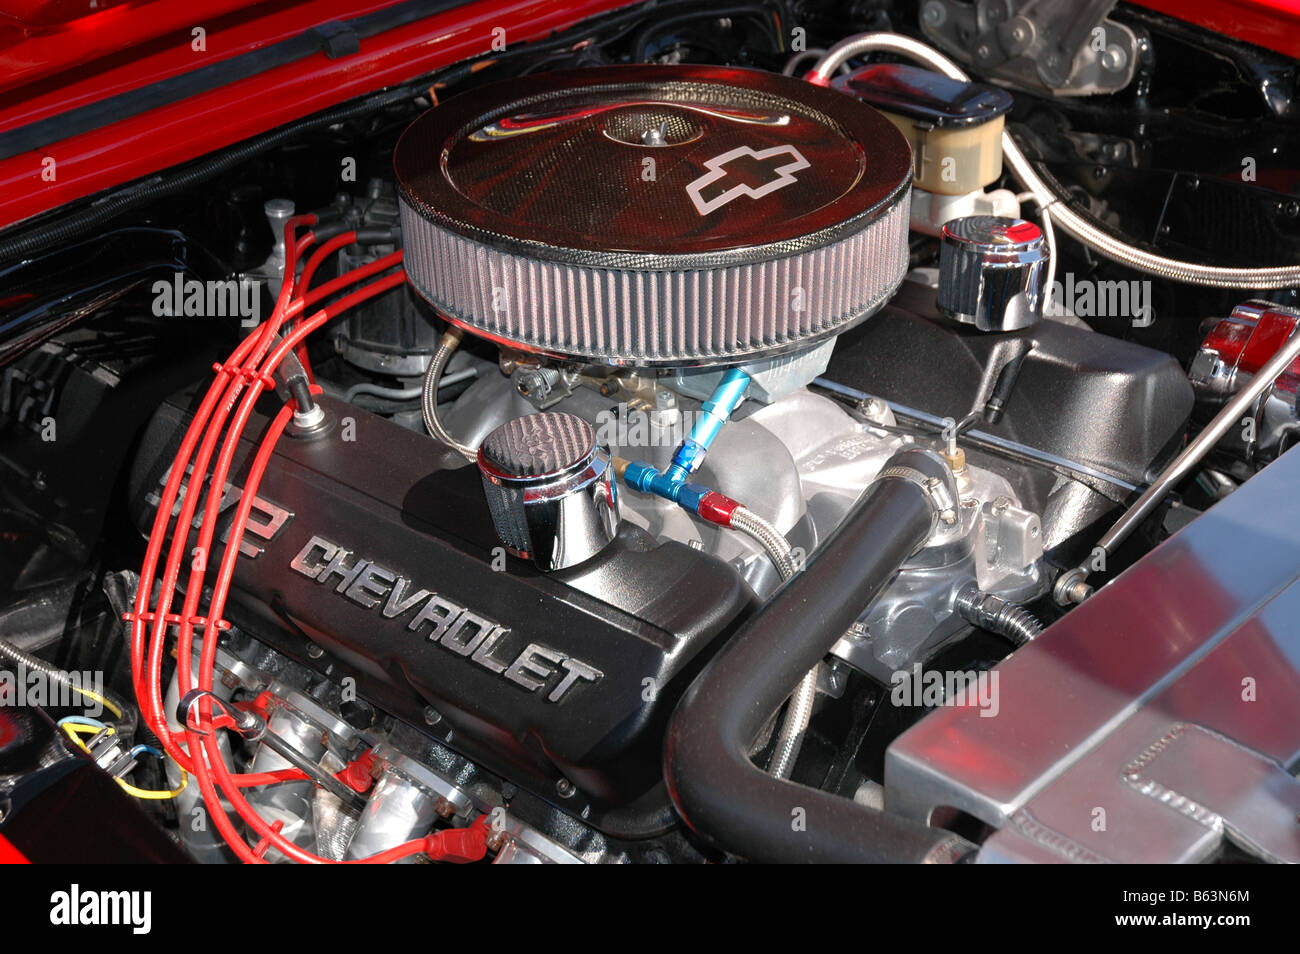 572 Big Block Chevy Engine Stock Photo: 20980812 - Alamy